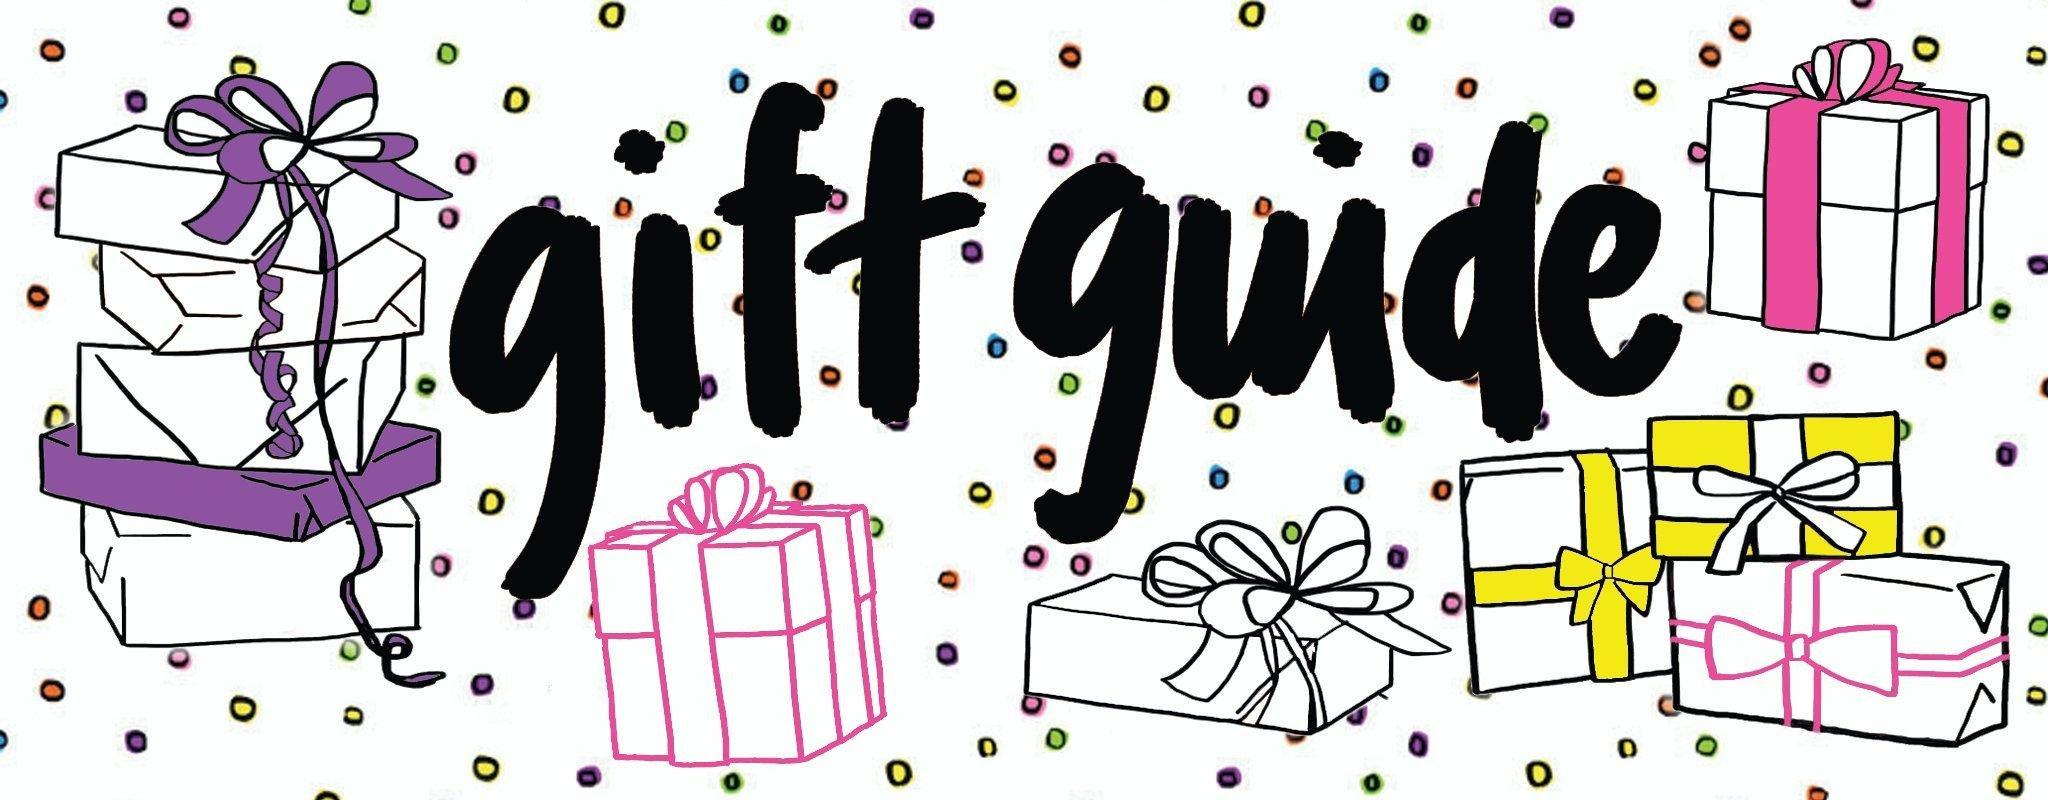 The Beyond Type 1 2015 Gift Guide!